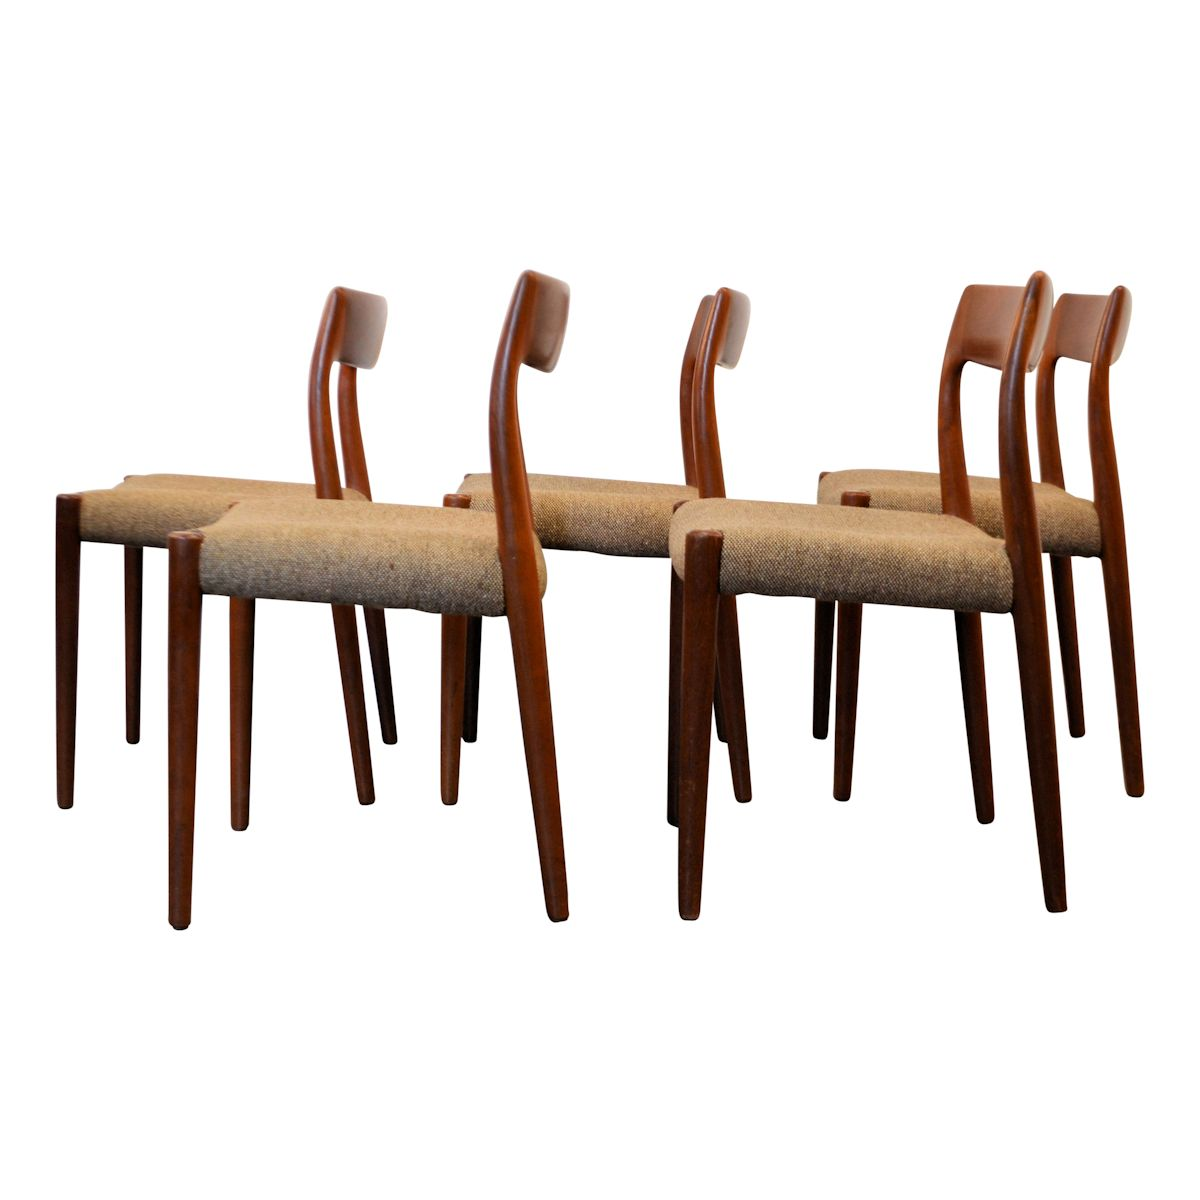 Vintage Dining Chairs By Niels O. Møller Model #77